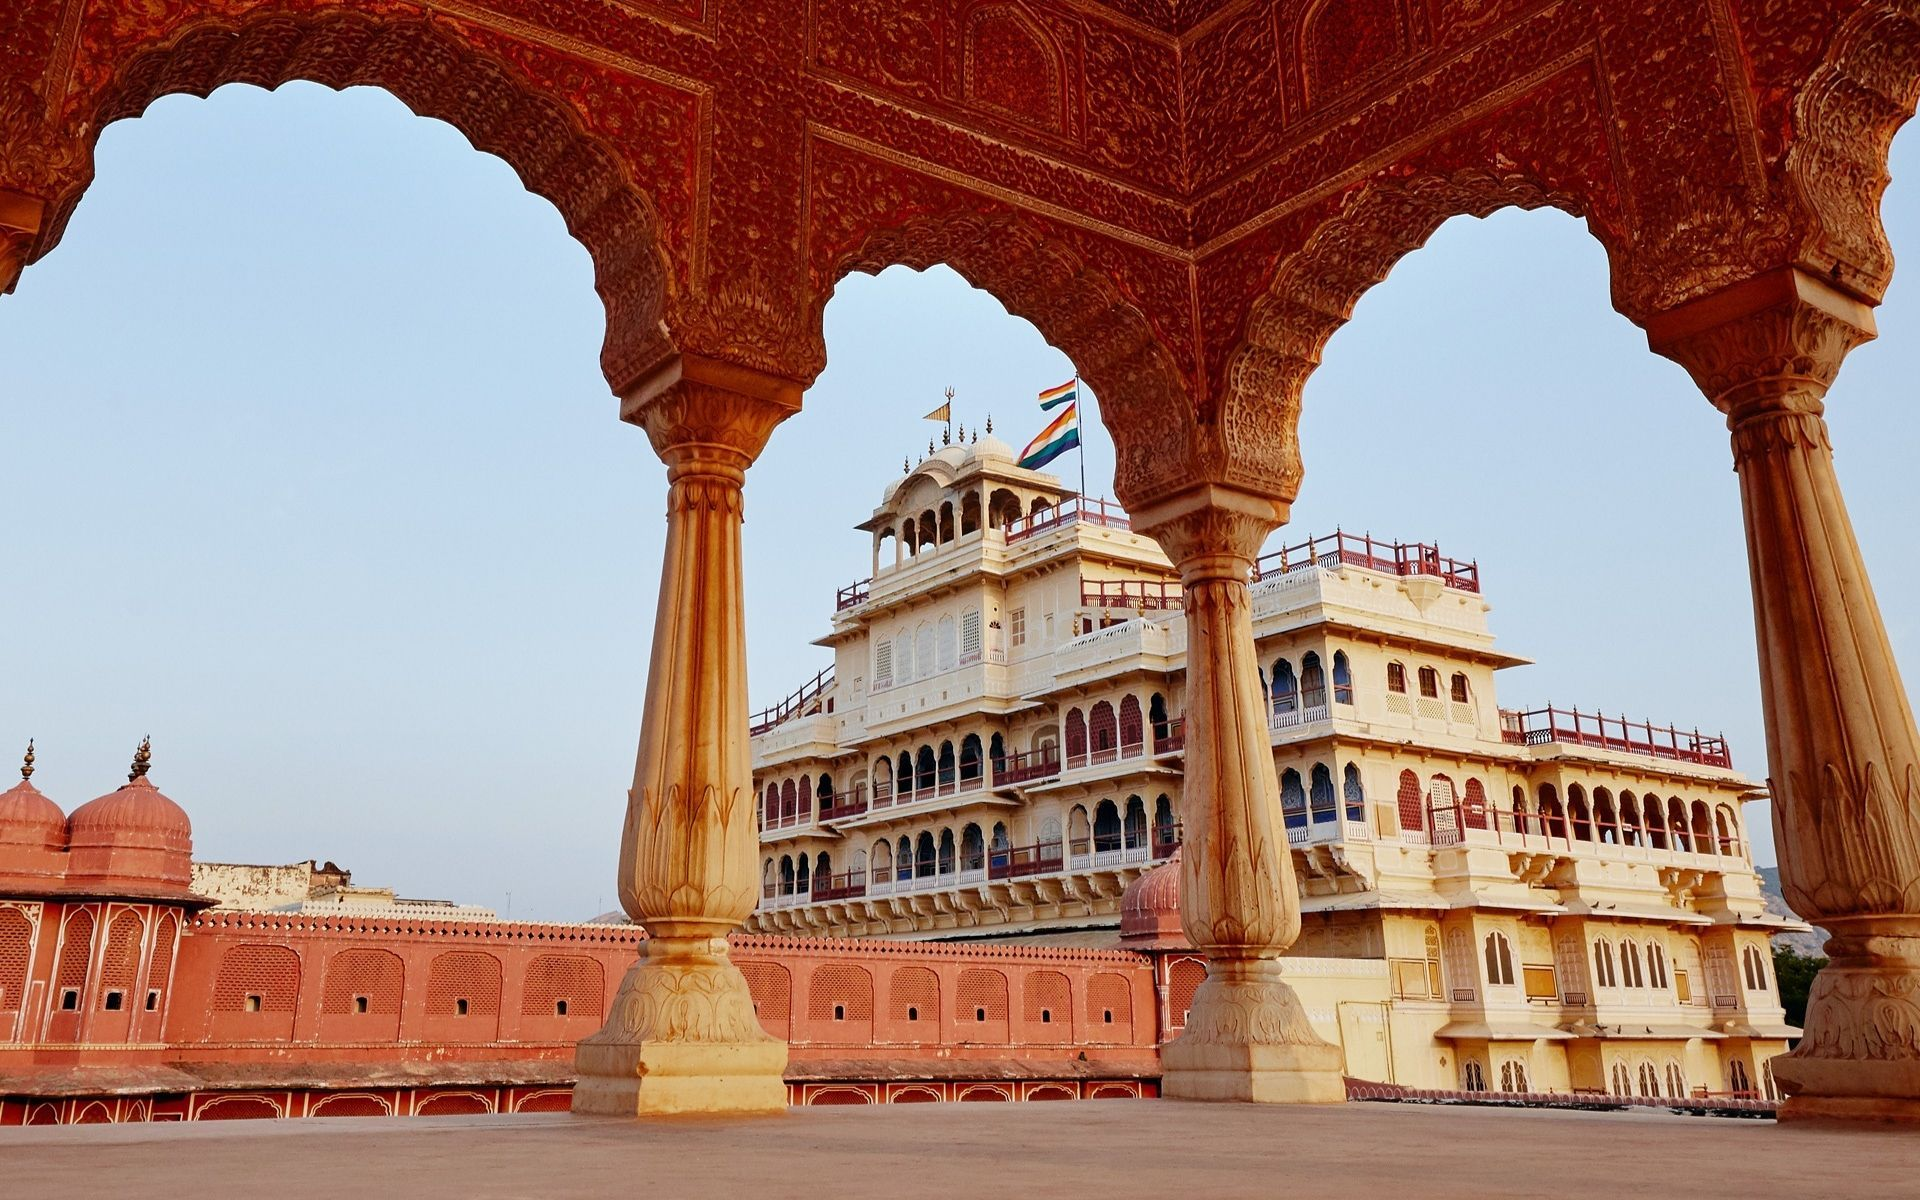 For RM33,000, Airbnb Offers You A Chance To Live Like A Royal At The City Palace Of Jaipur